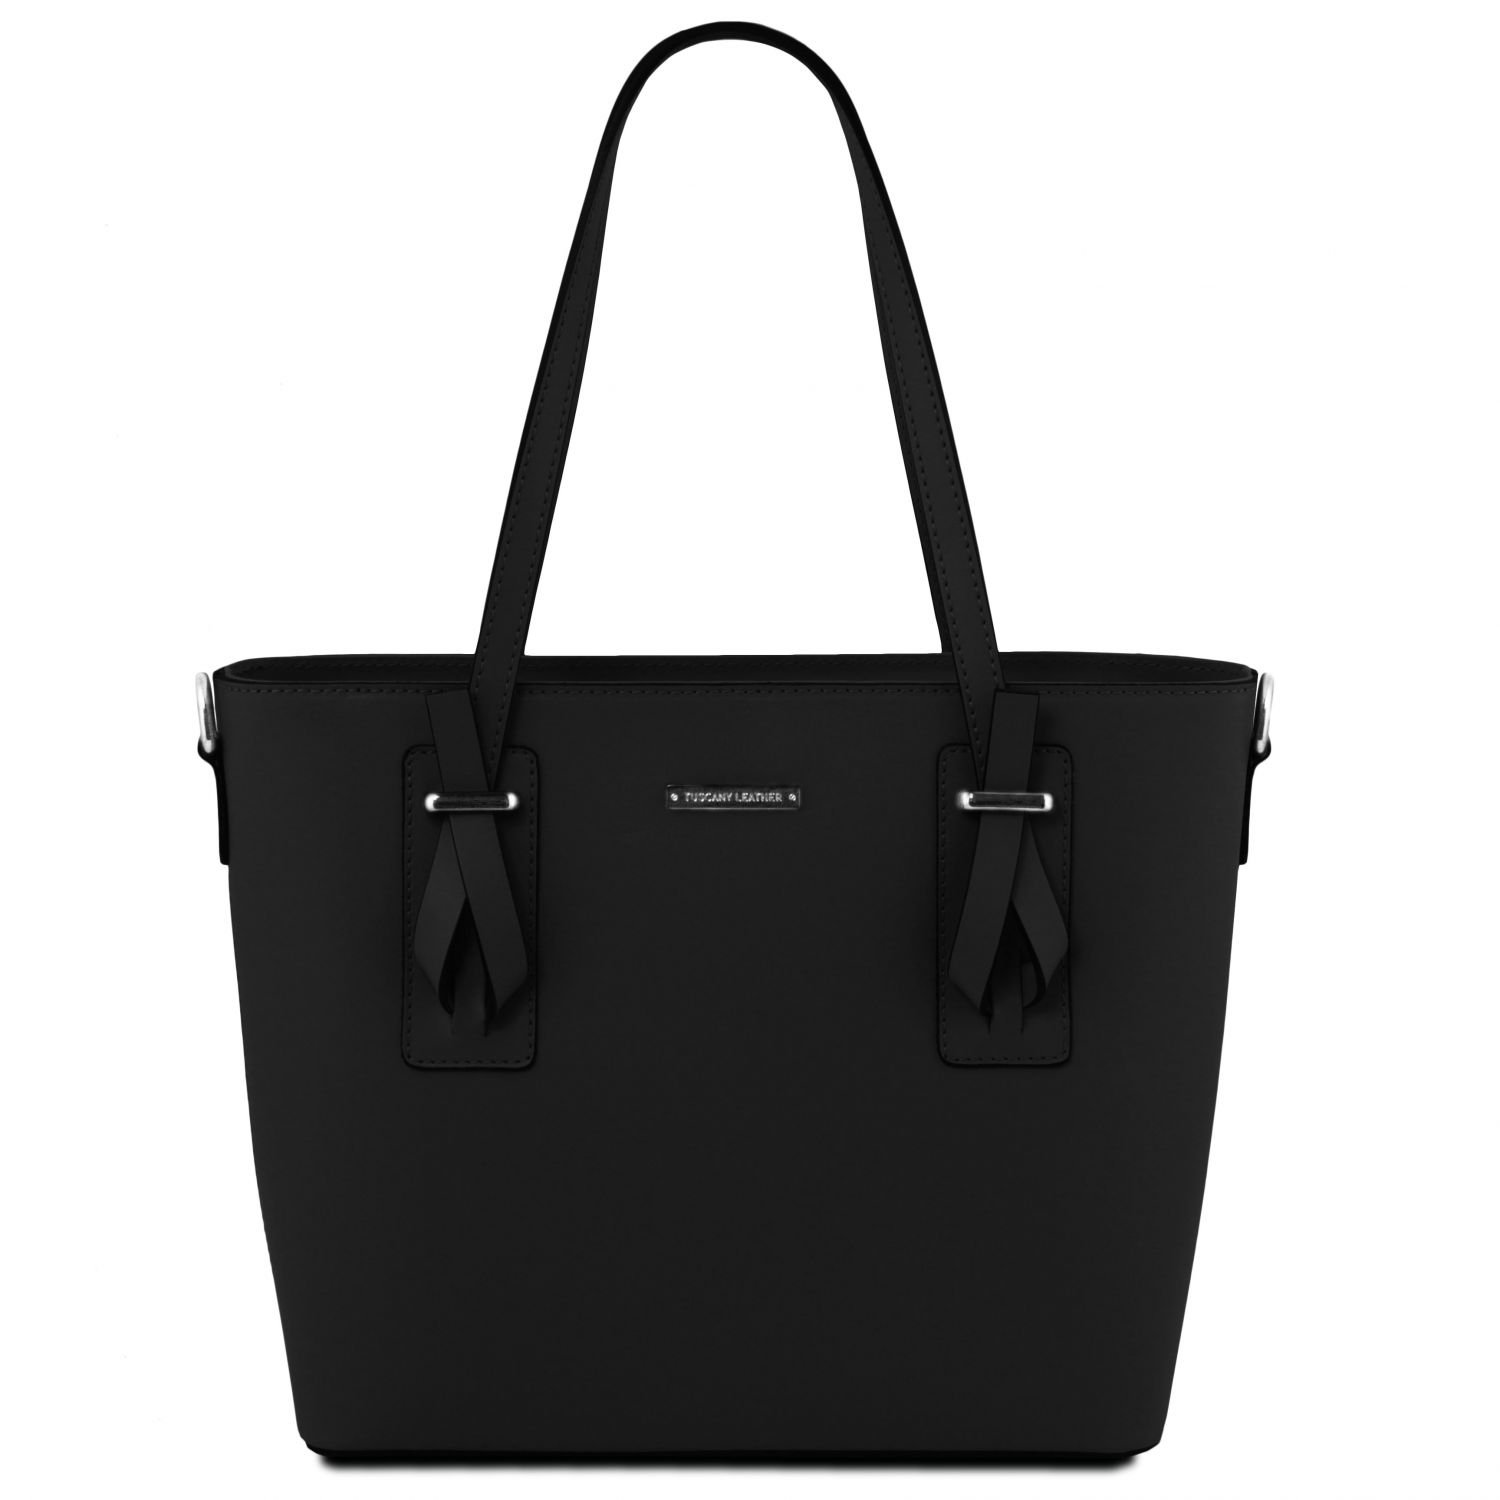 Tuscany Leather Afrodite Leather tote Black